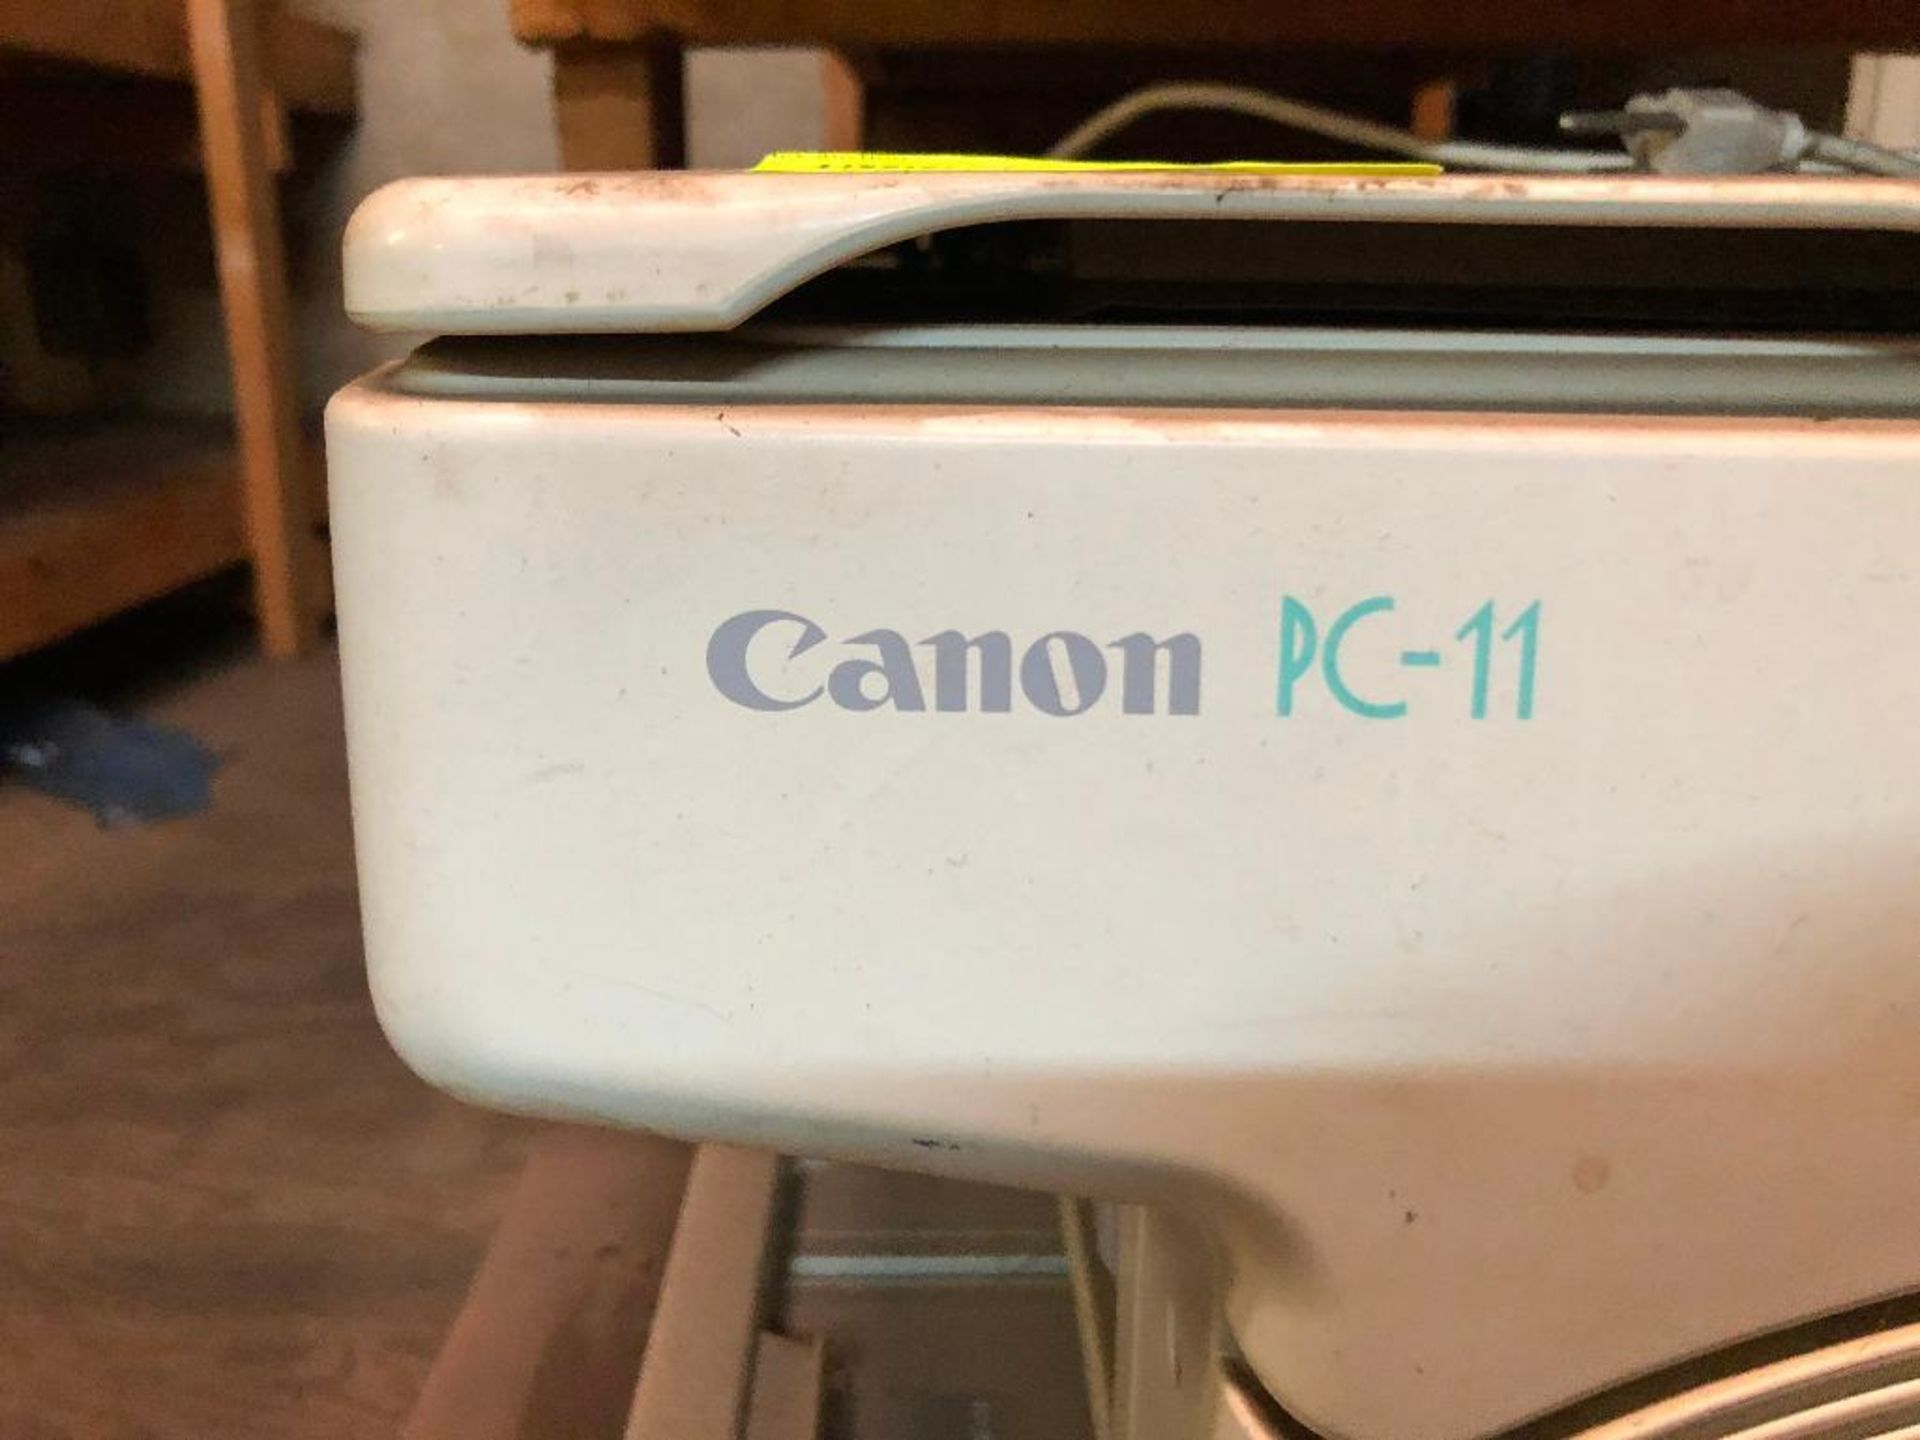 Lot 135 - DESCRIPTION: CANON PC-11 OFFICE PRINTER ADDITIONAL INFORMATION: USED CONDITION. LOCATION: SECOND FLO